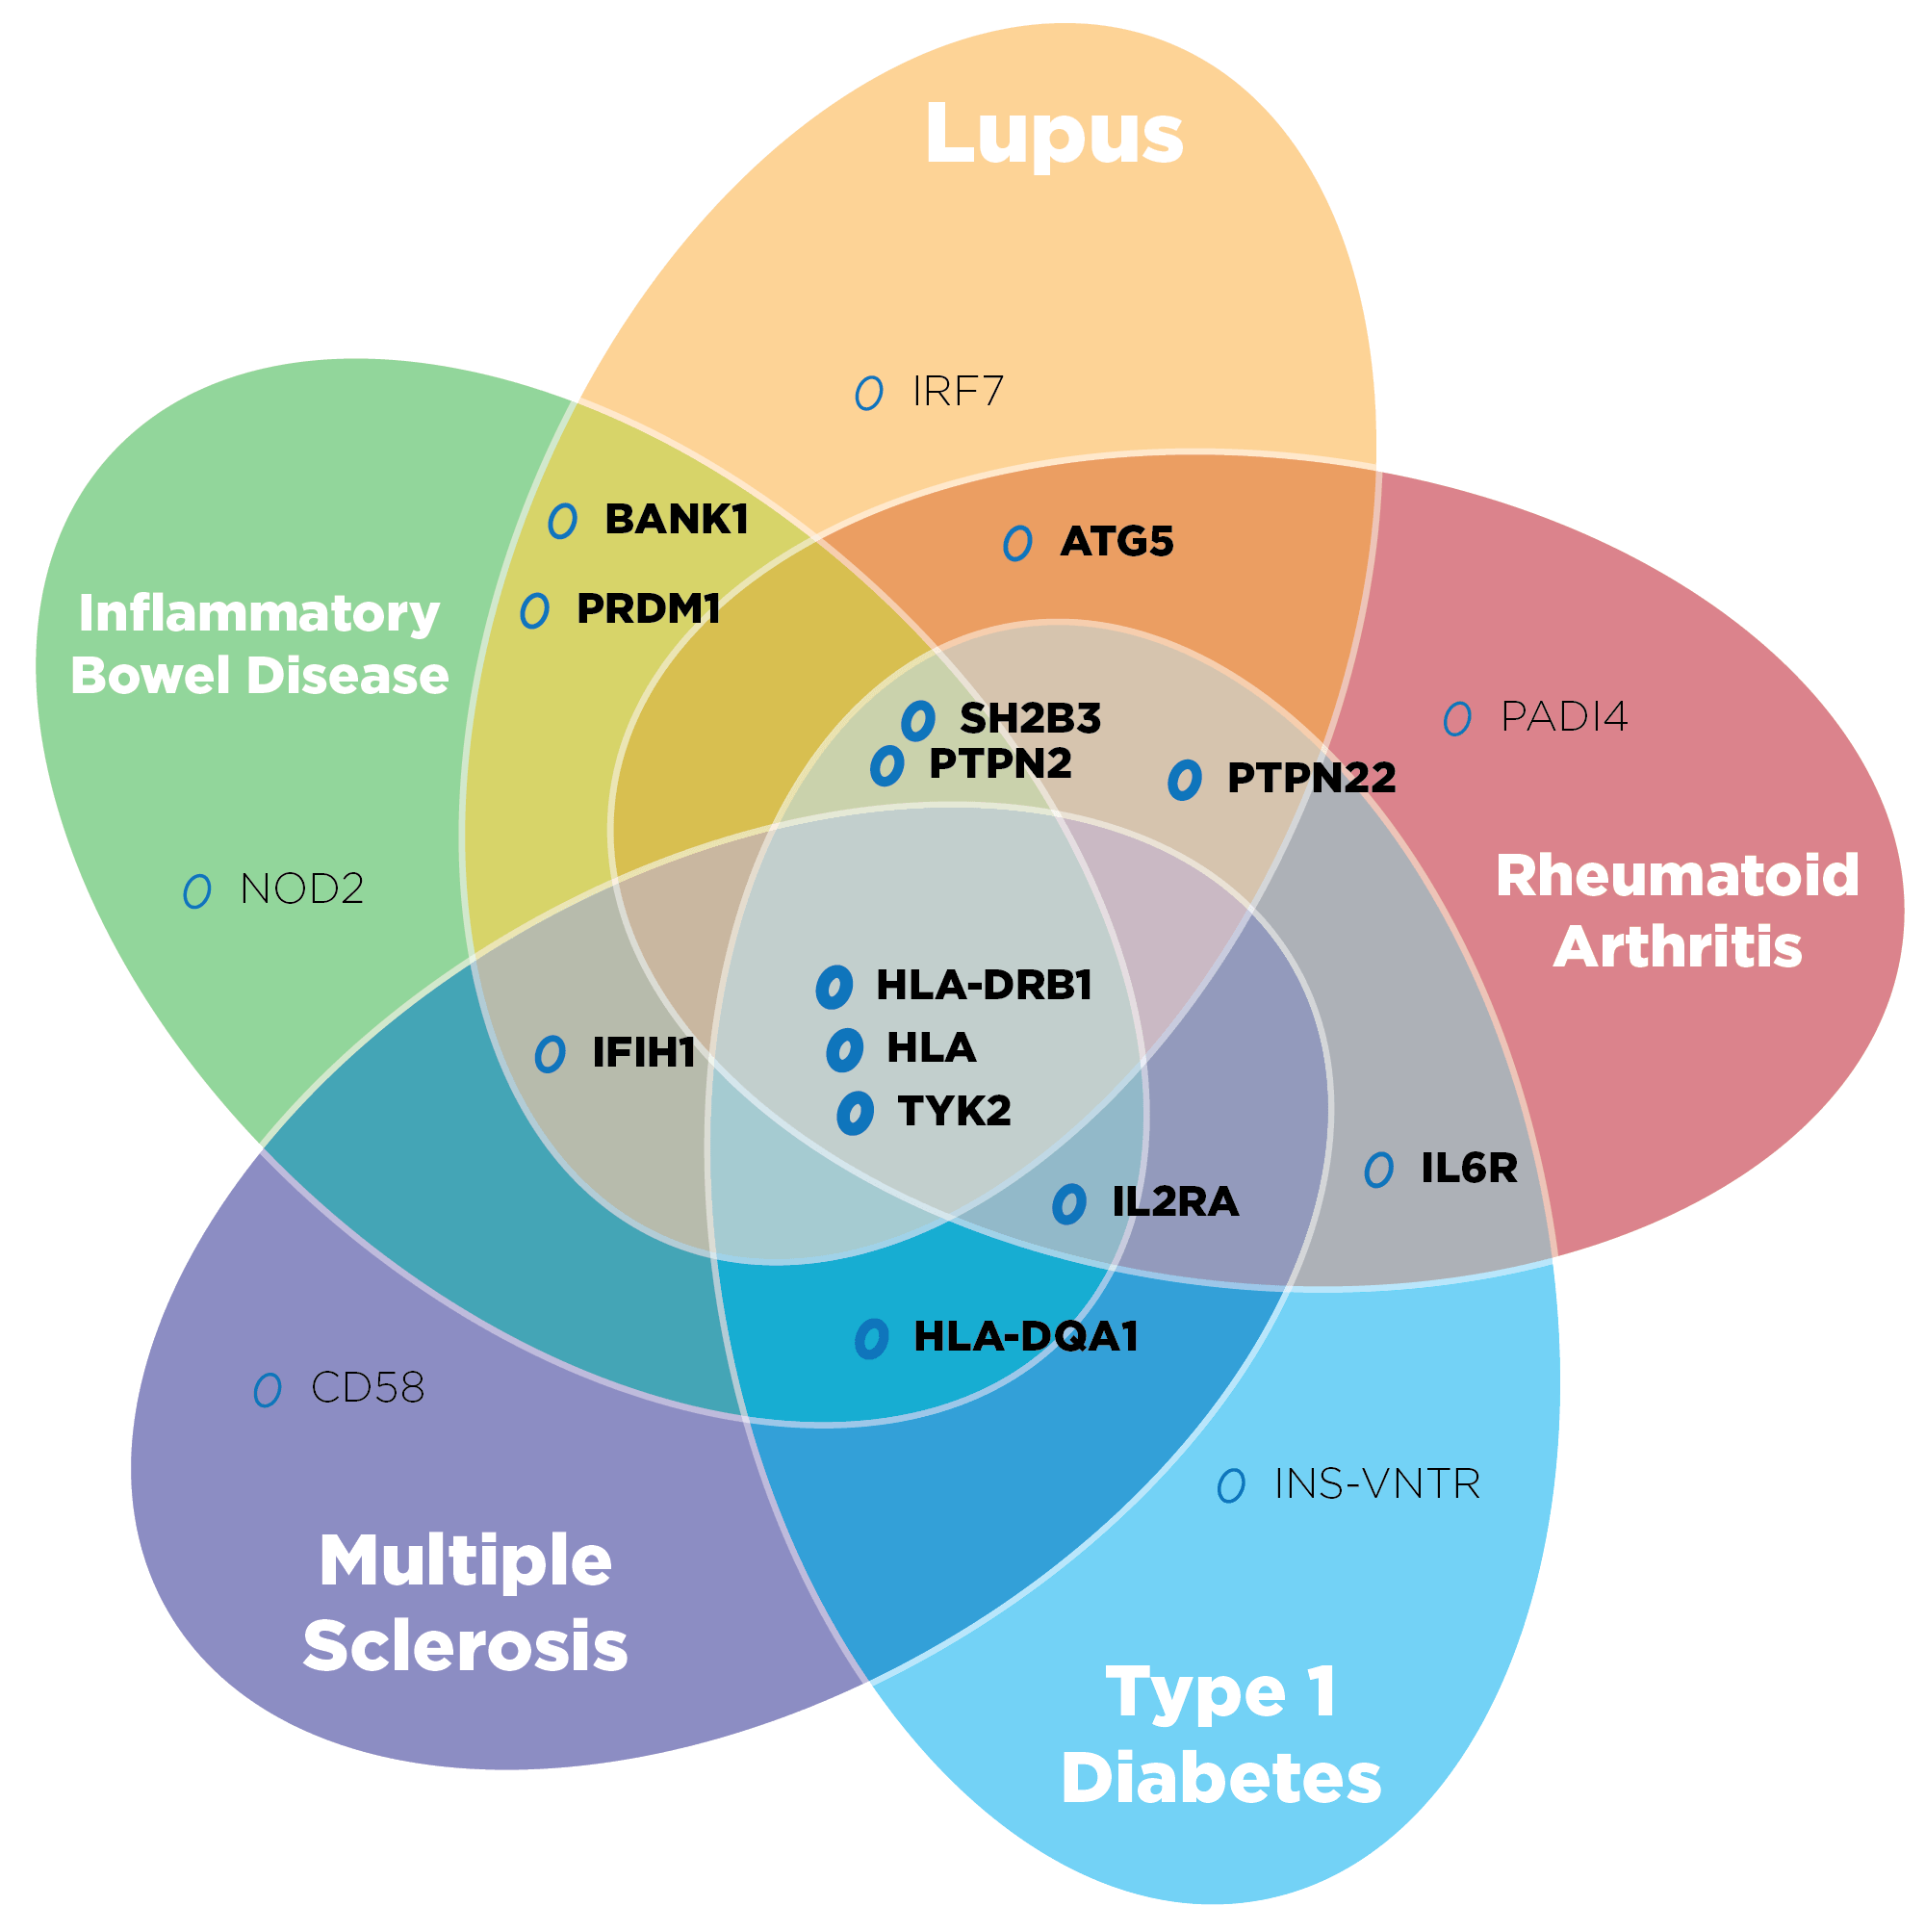 Genetic Connections - Key Genes that appear in multiple autoimmune diseases.